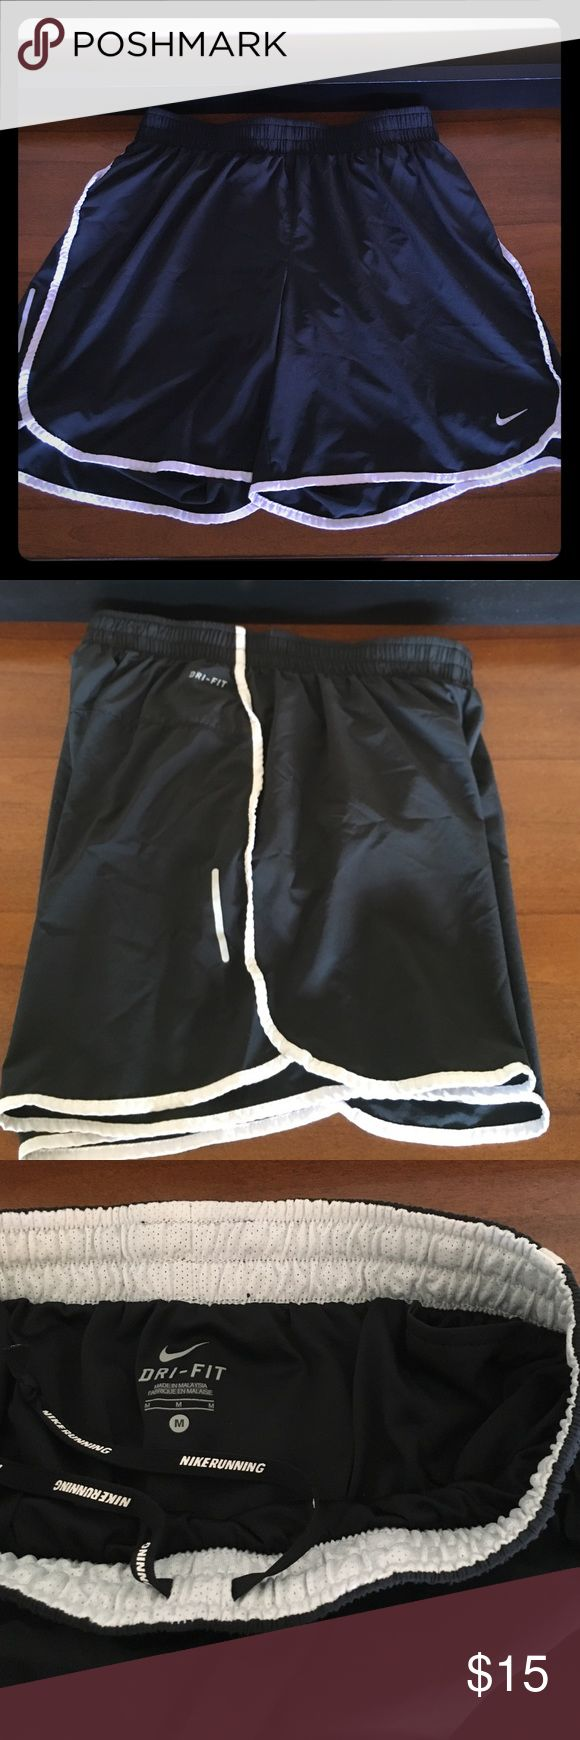 """Nike running shorts, size M Black Nike dri-fit running shorts, size Medium. Love that these are a bit longer (~14"""" from waist to seam). Lined with dri-fit material, and includes 2 small inner pockets for a key, GU, etc. White trim and logo with reflective details. Great shorts, barely worn! Nike Shorts"""